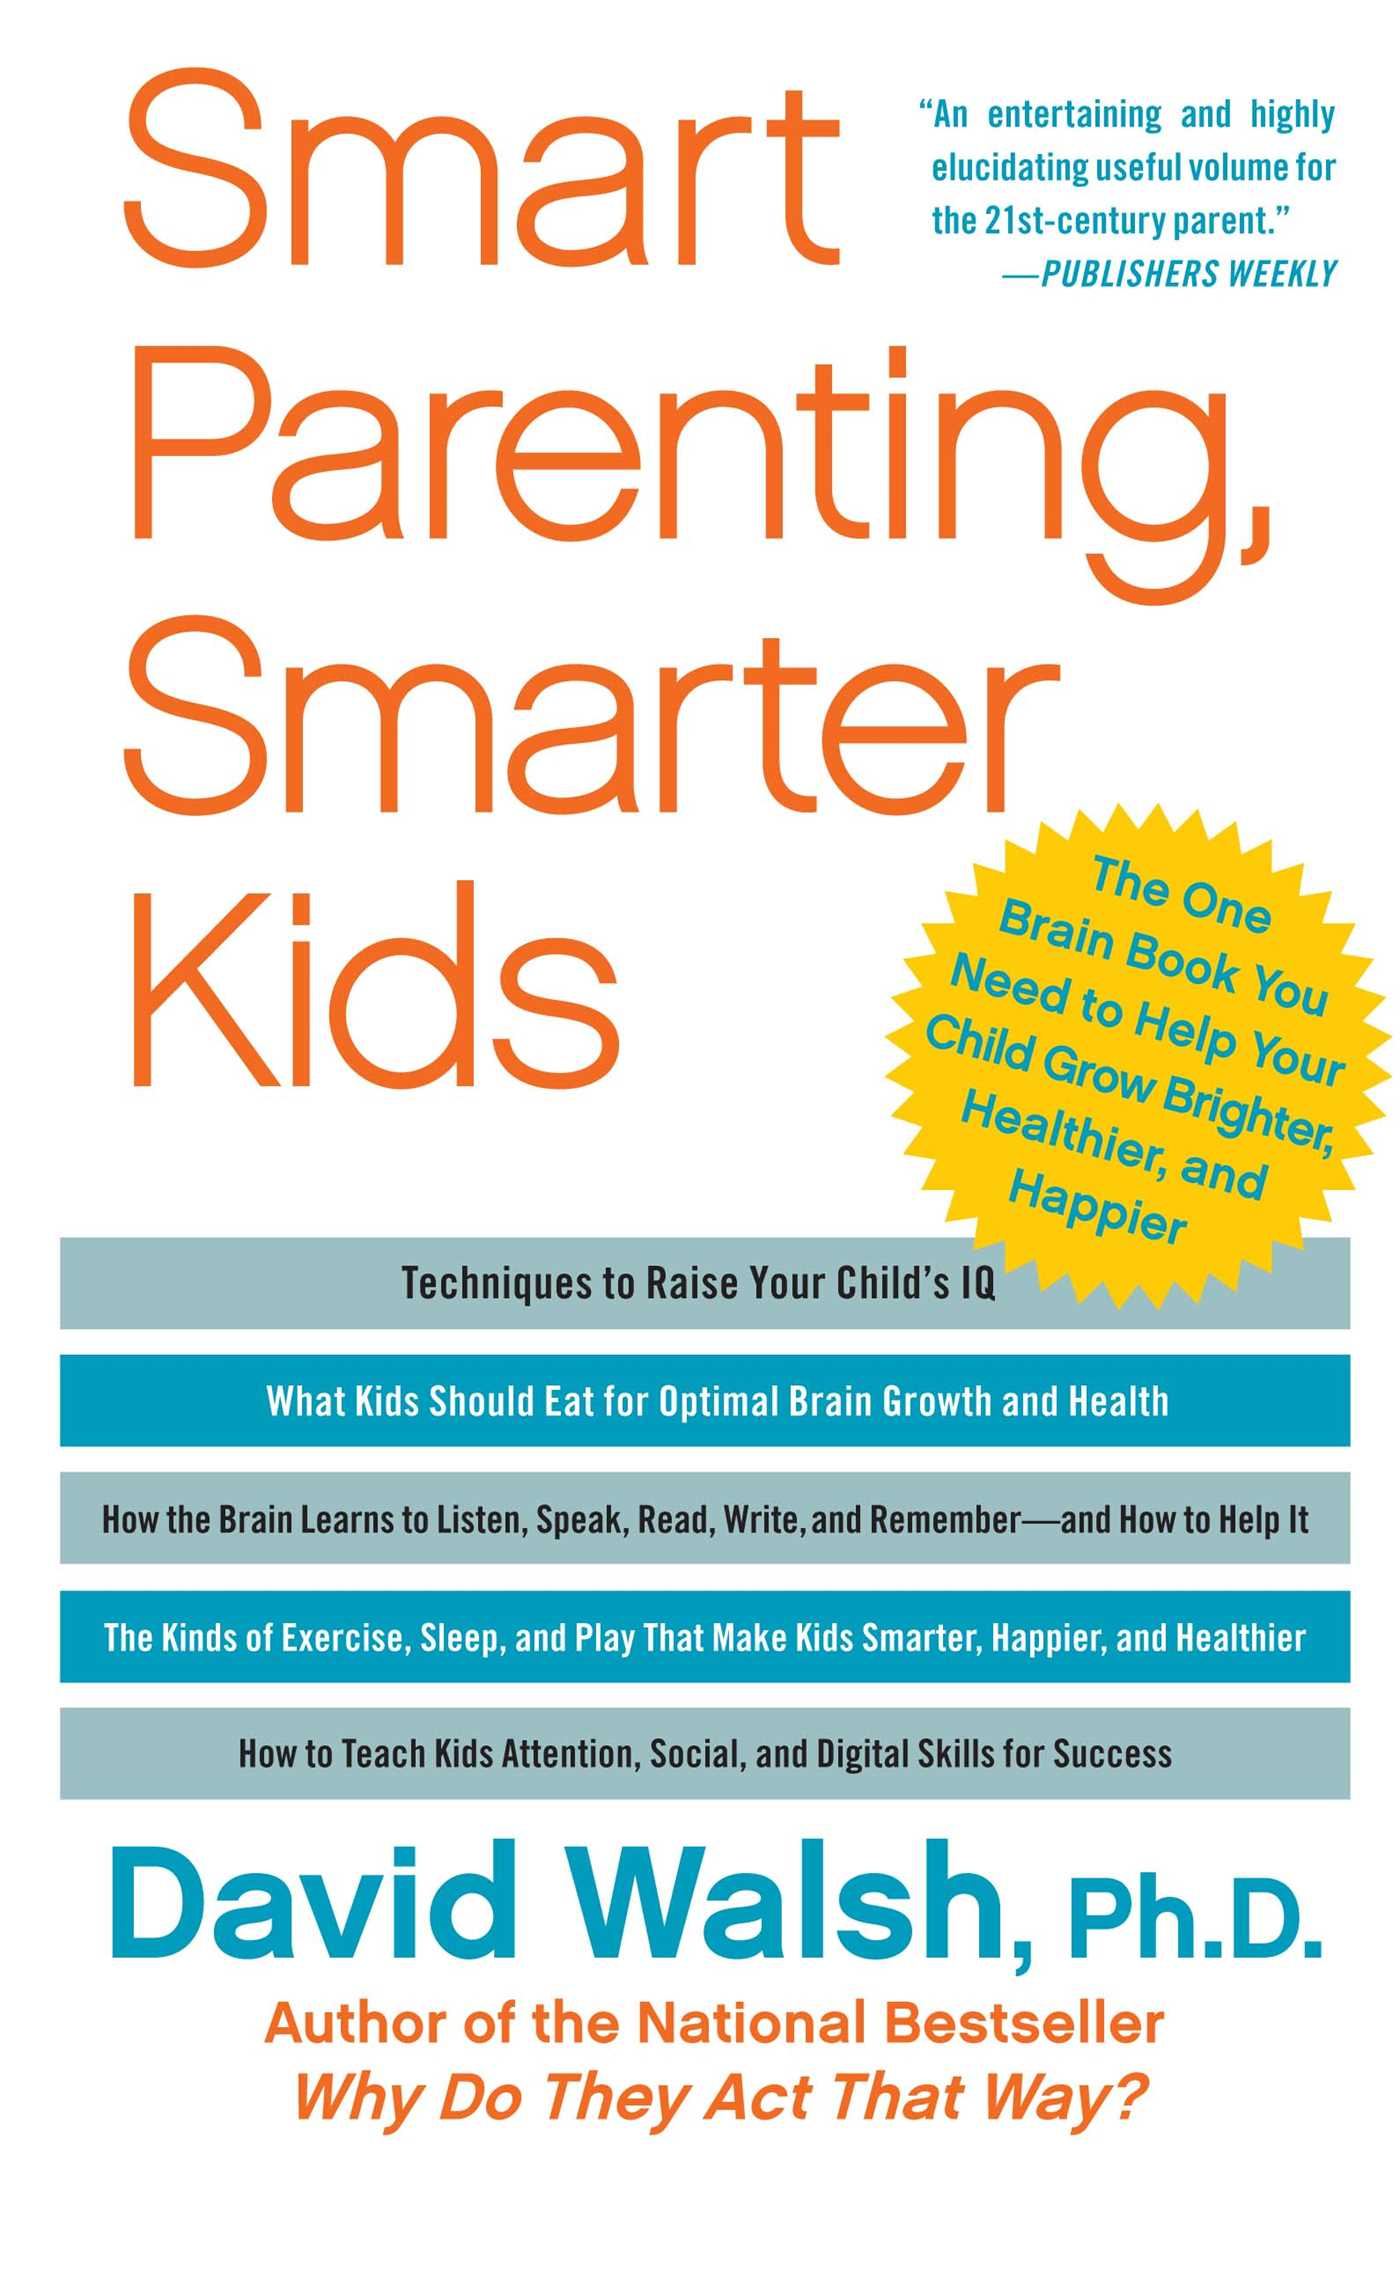 Smart-parenting-smarter-kids-9781439121191_hr